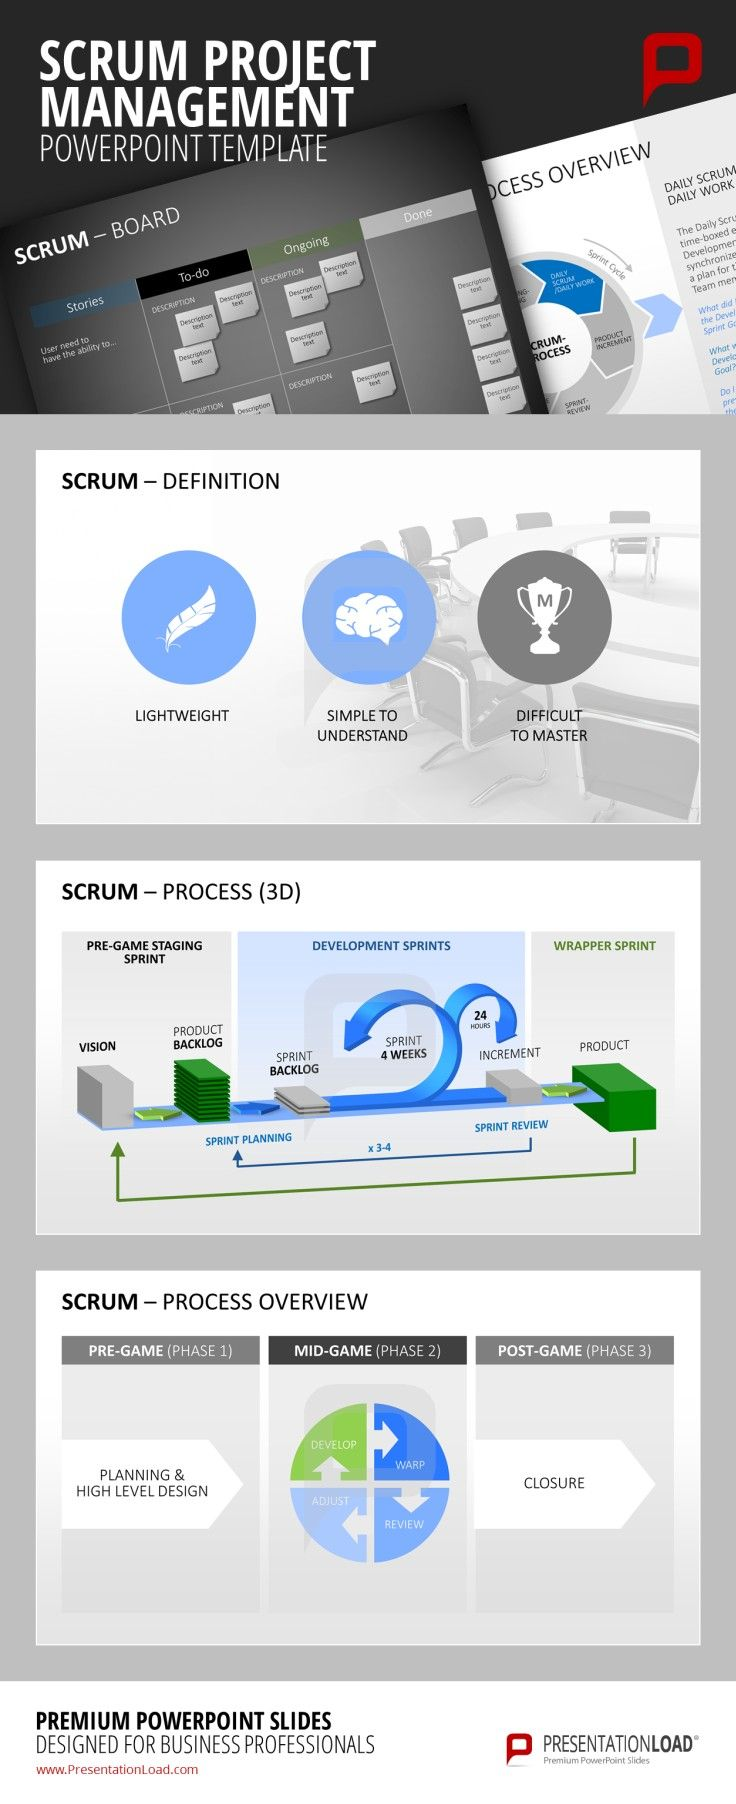 Scrum Project Management Powerpoint Templates Presentationload Http